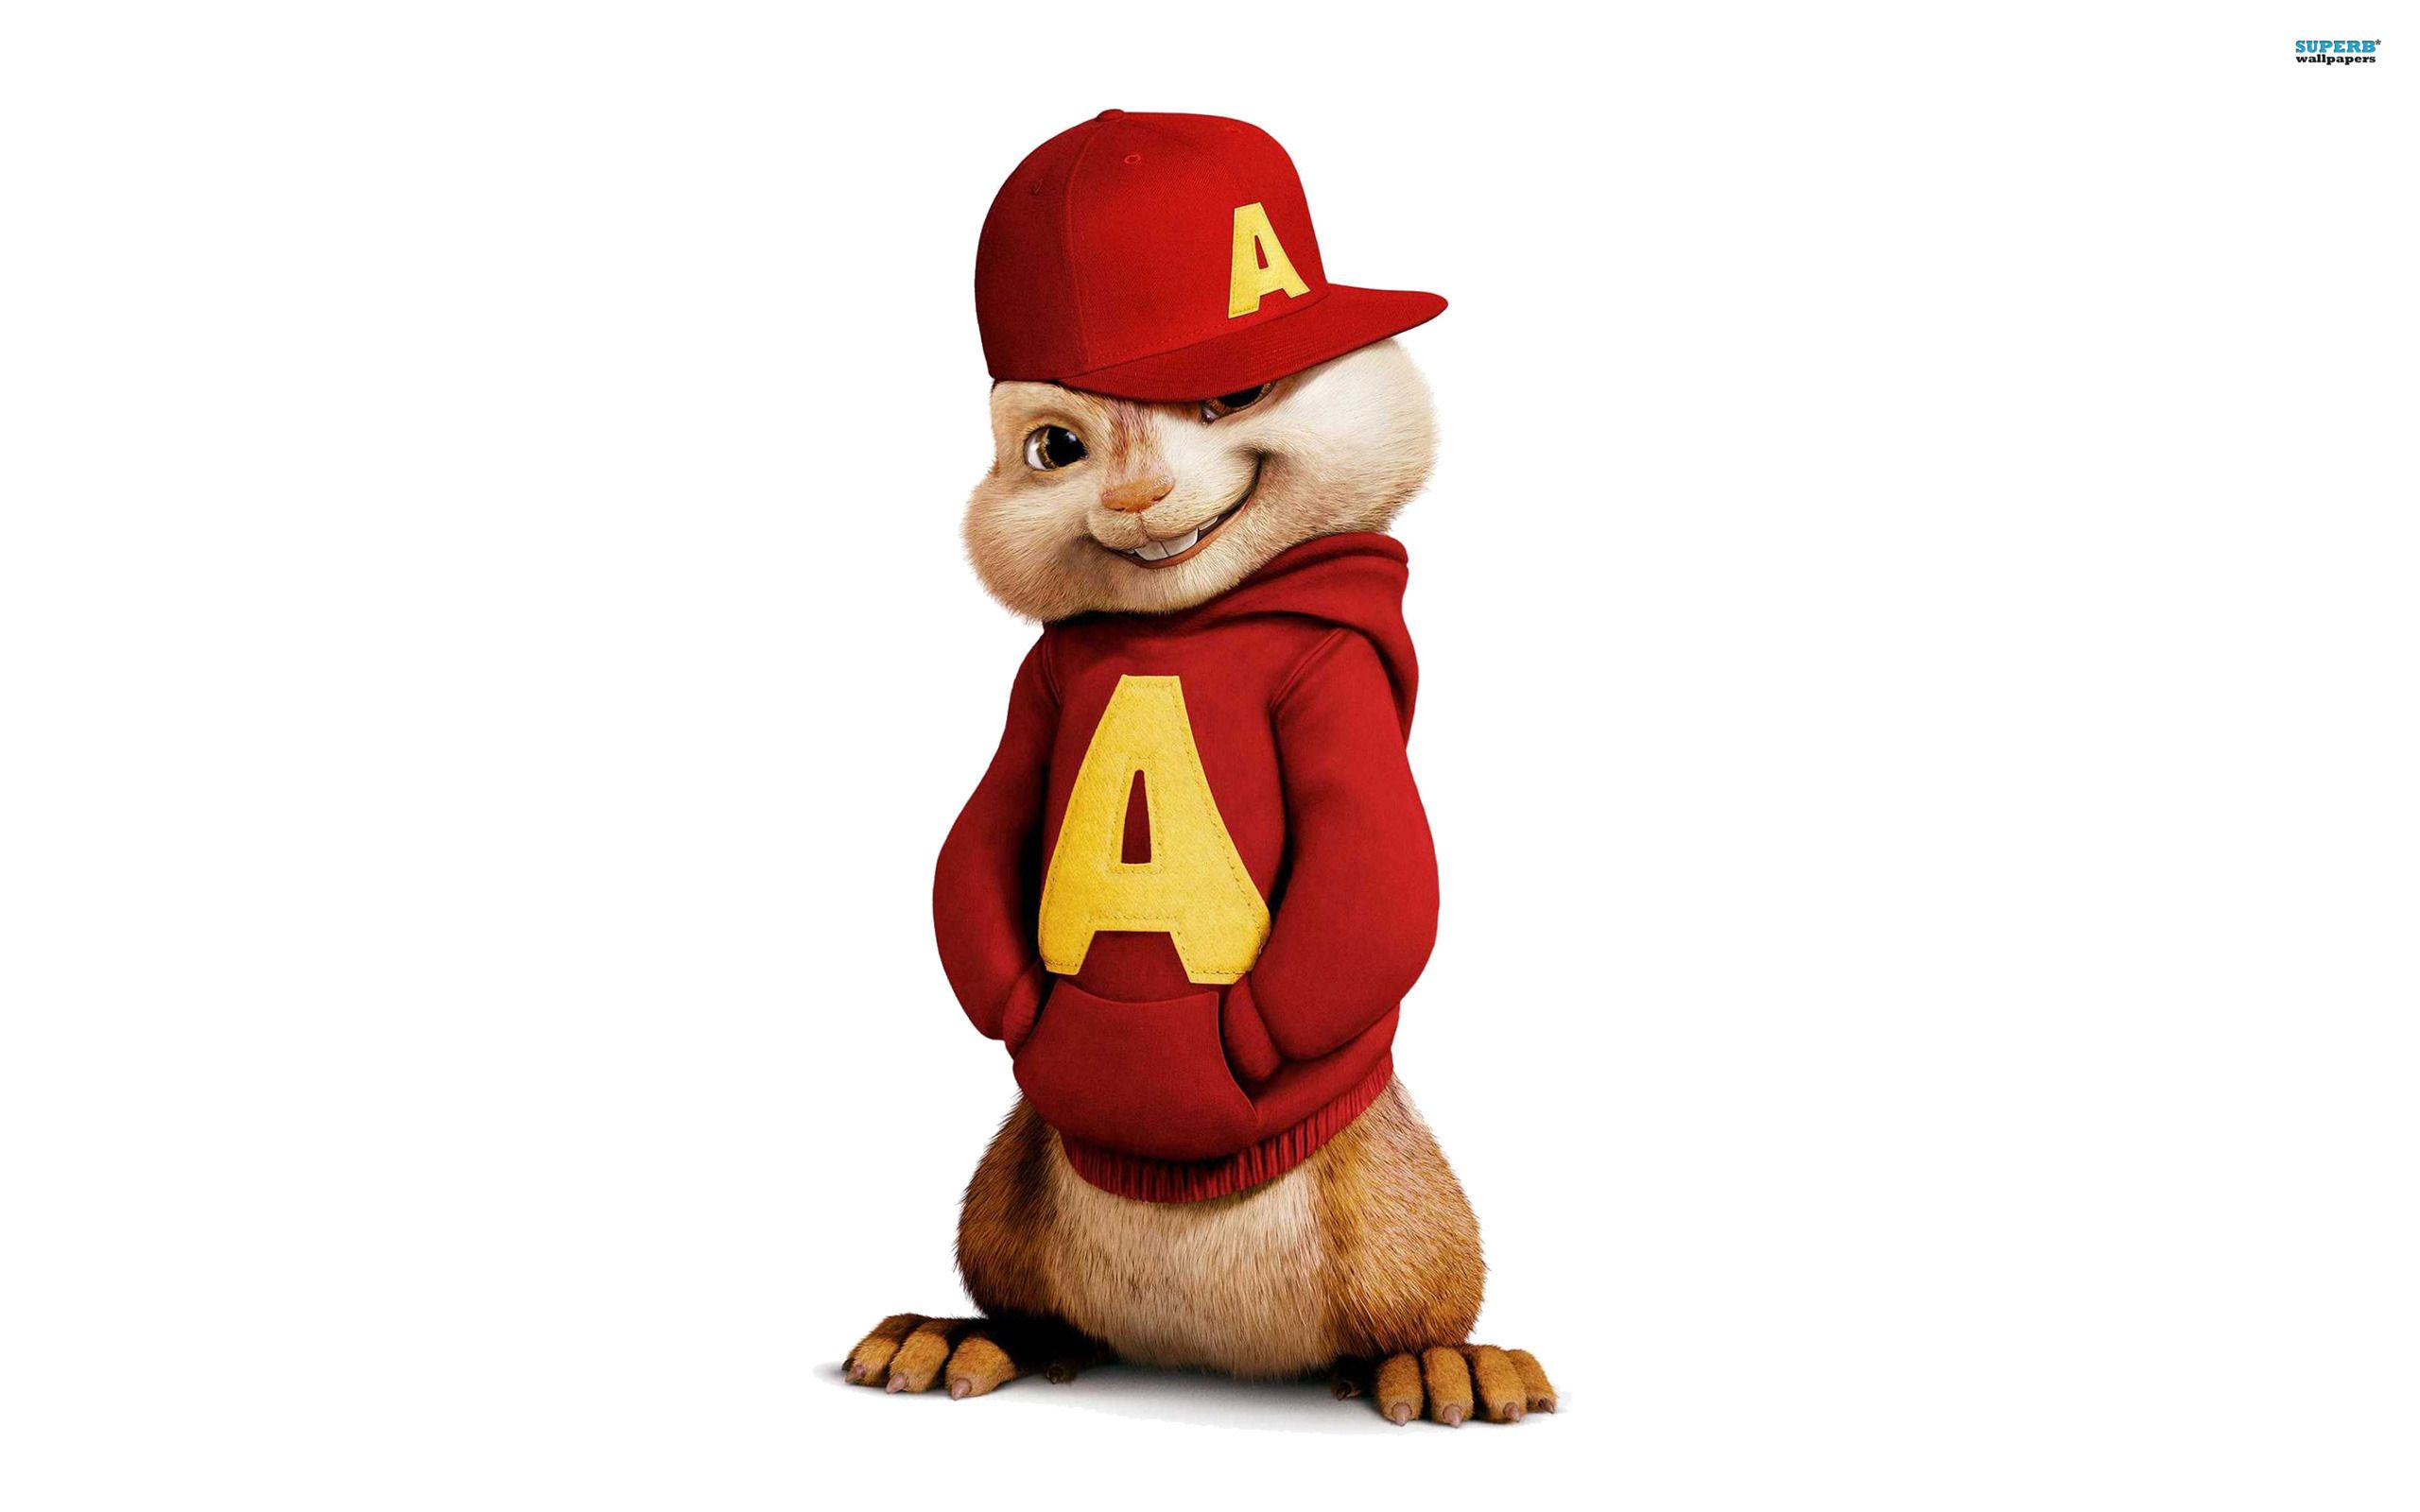 alvin and the chipmunks movie download in hd